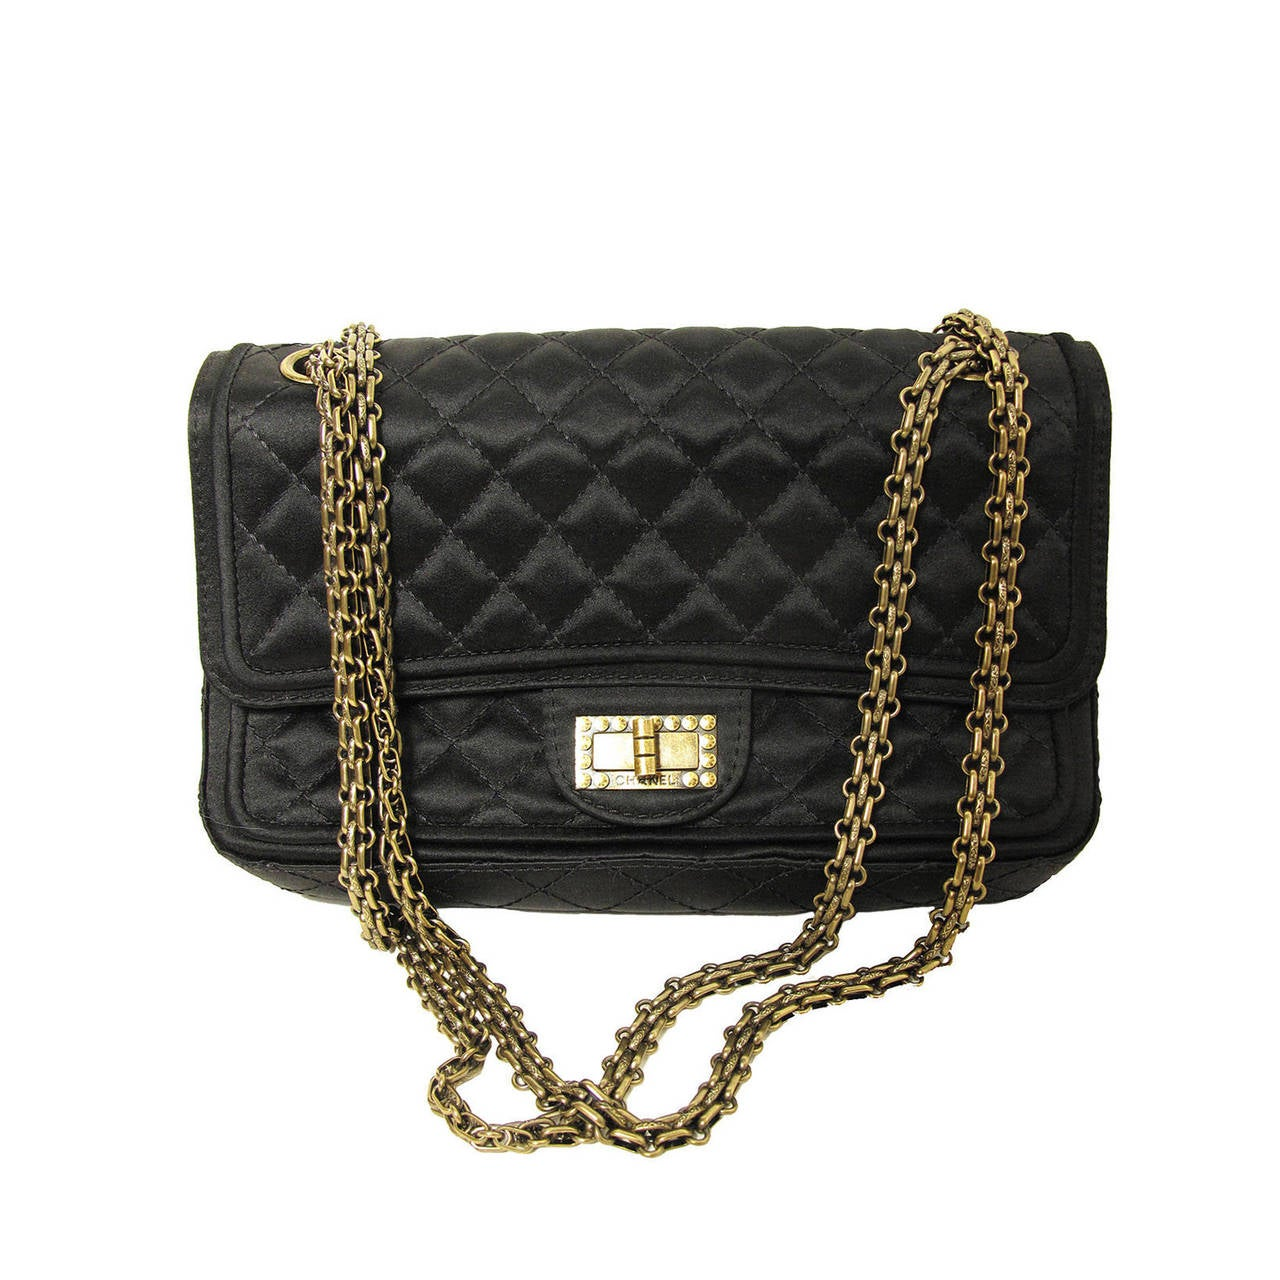 CHANEL 2.55 Double Flap Bag 2010 at 1stdibs